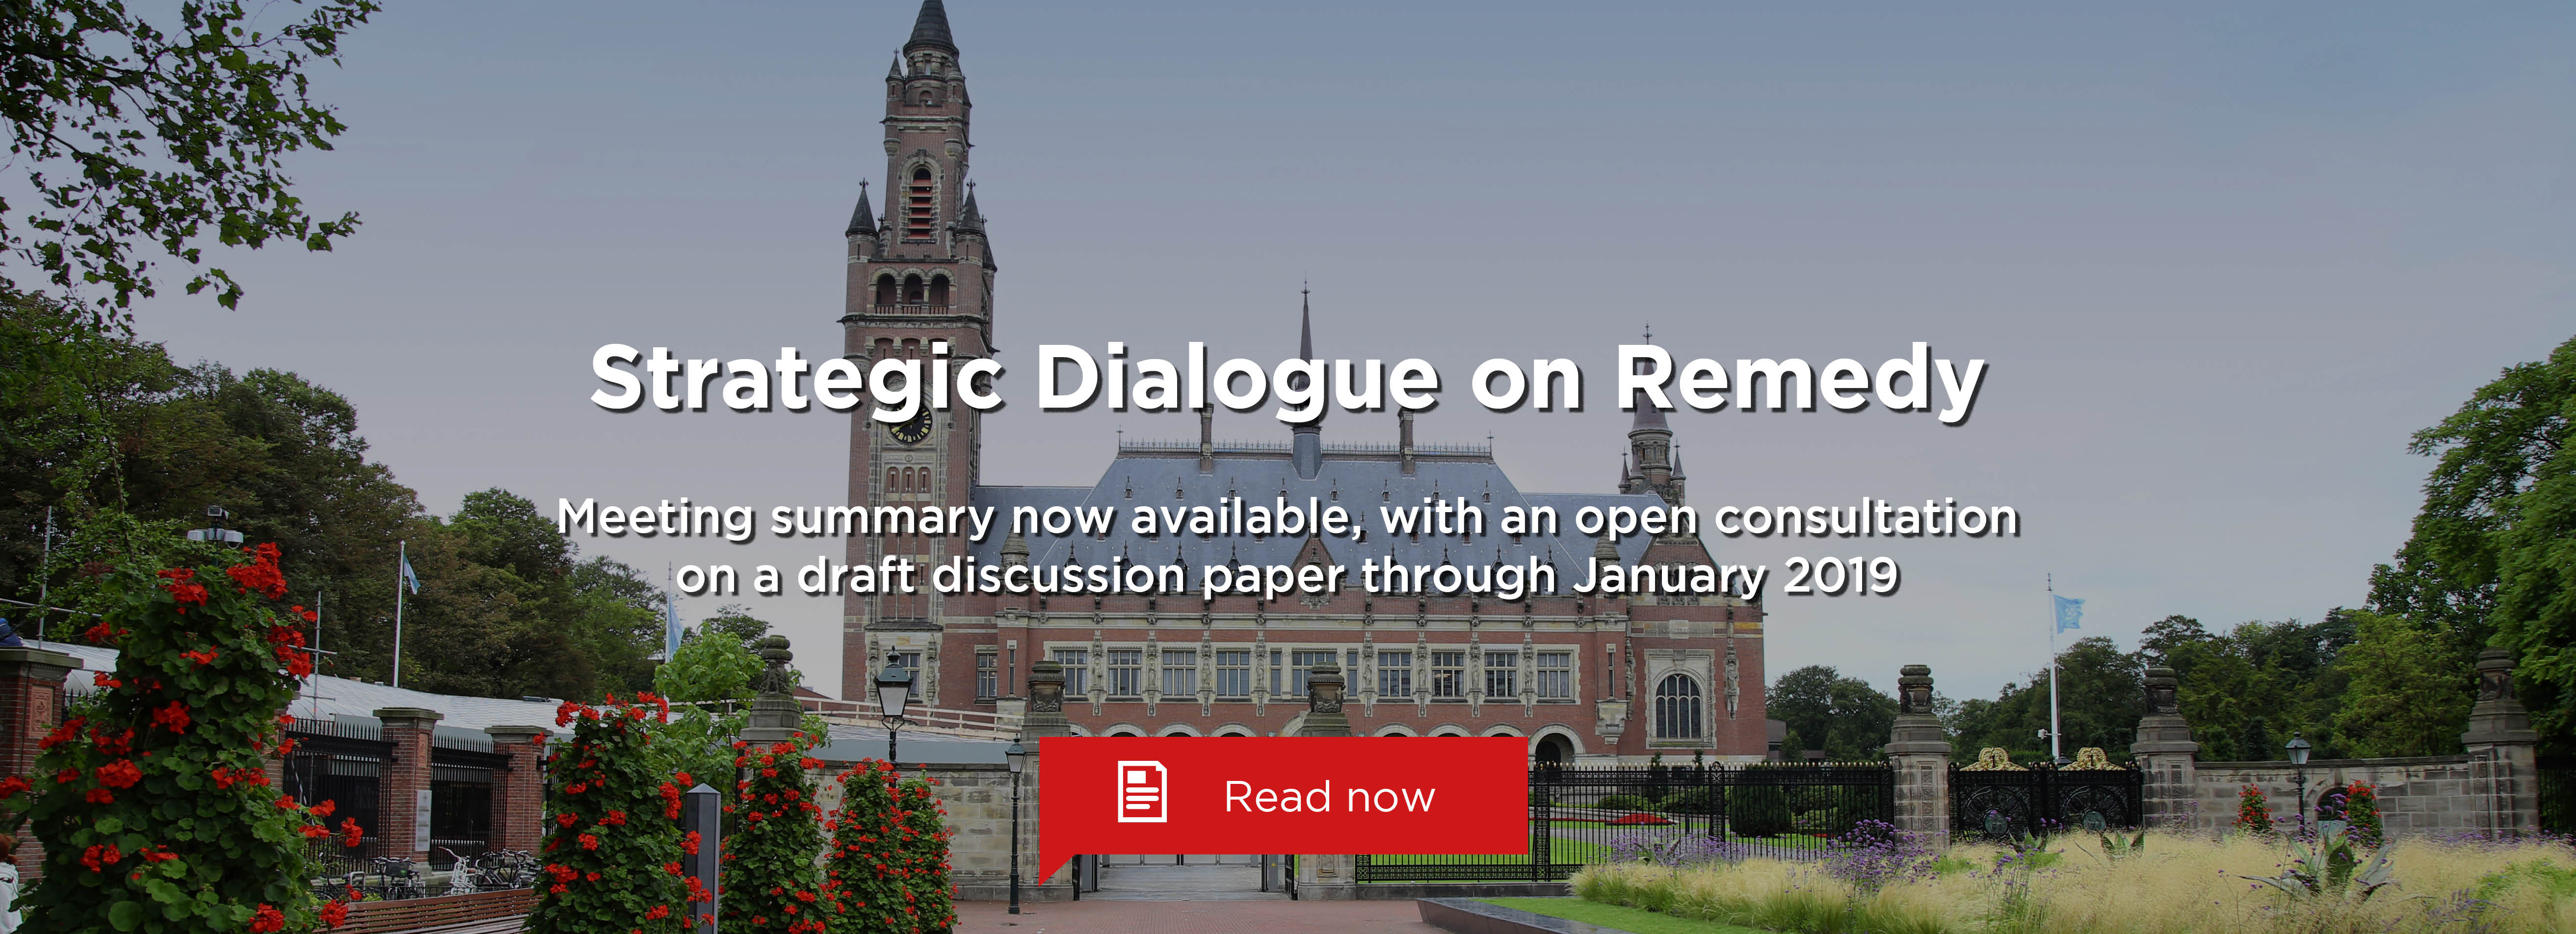 Strategic Dialogue on Remedy